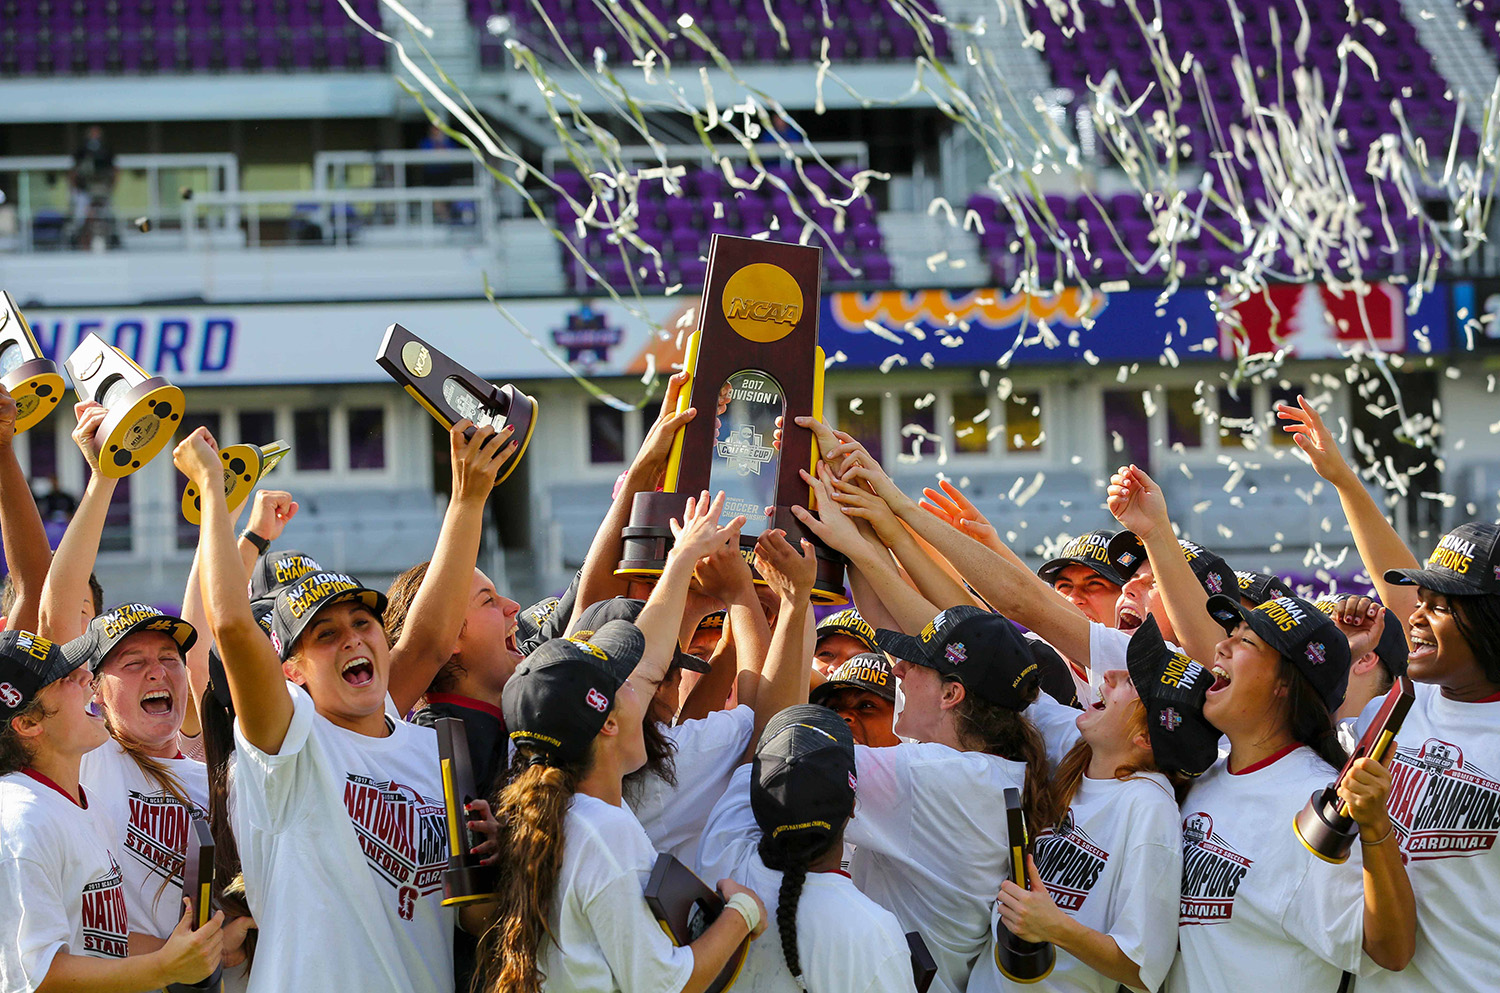 Dec 3, 2017; Orlando, FL, USA; The Stanford Cardinal celebrate after defeating the UCLA Bruins in the NCAA women's soccer College Cup championship at Orlando City Stadium. Mandatory Credit: Matt Stamey-USA TODAY Sports